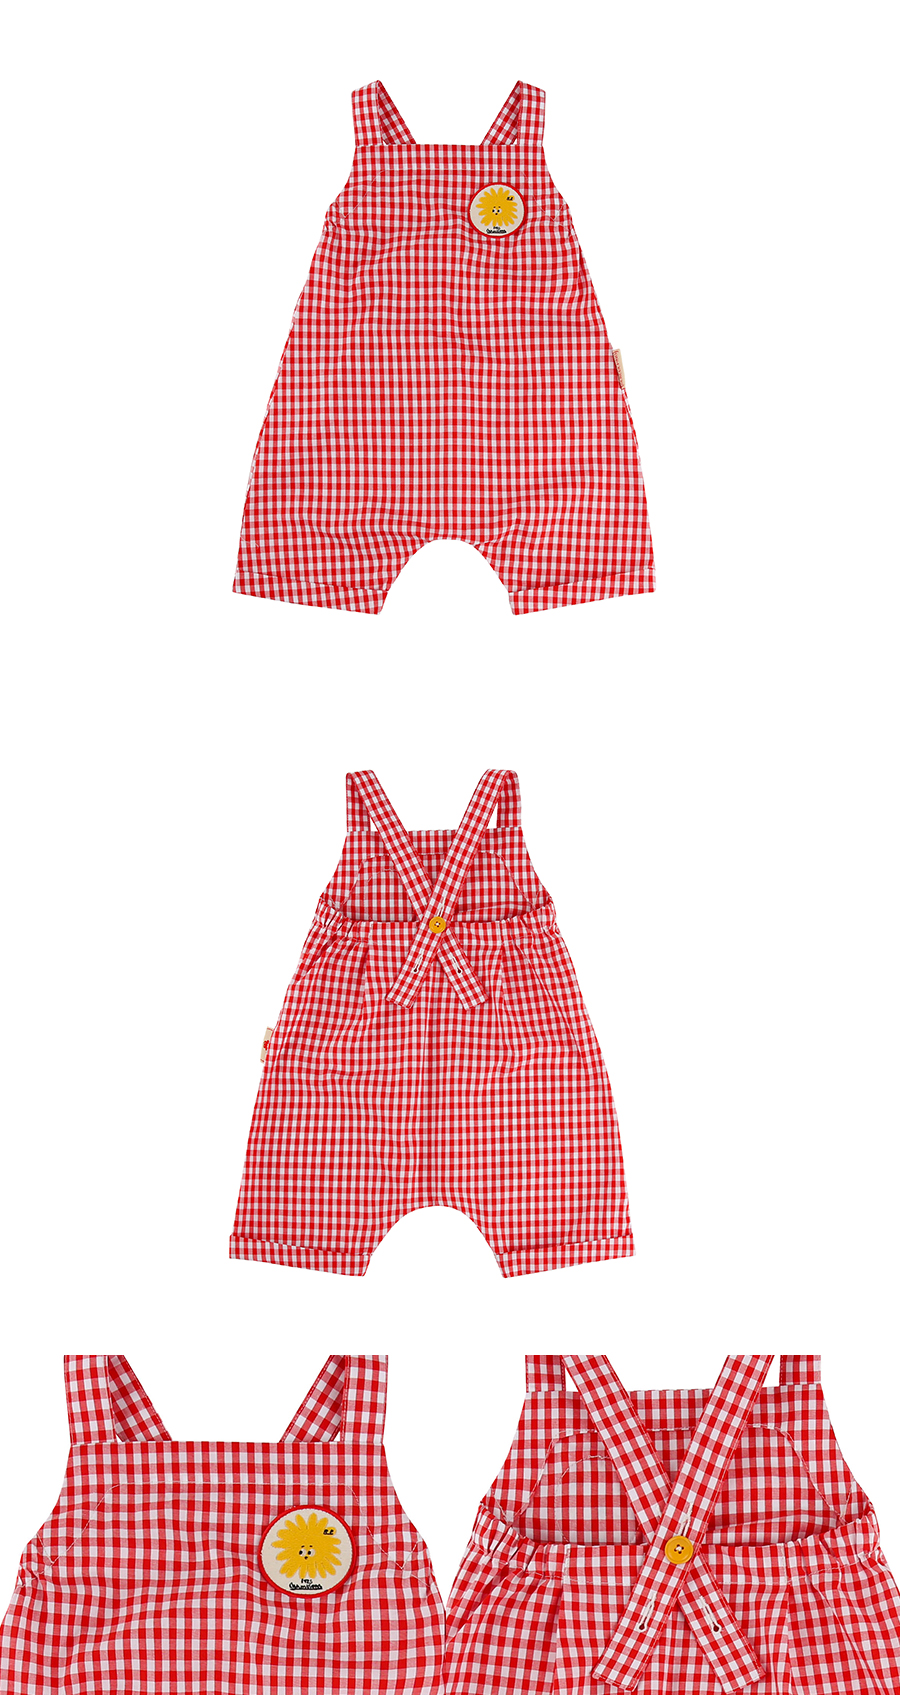 Pompom wappen baby gingham check playsuit 상세 이미지